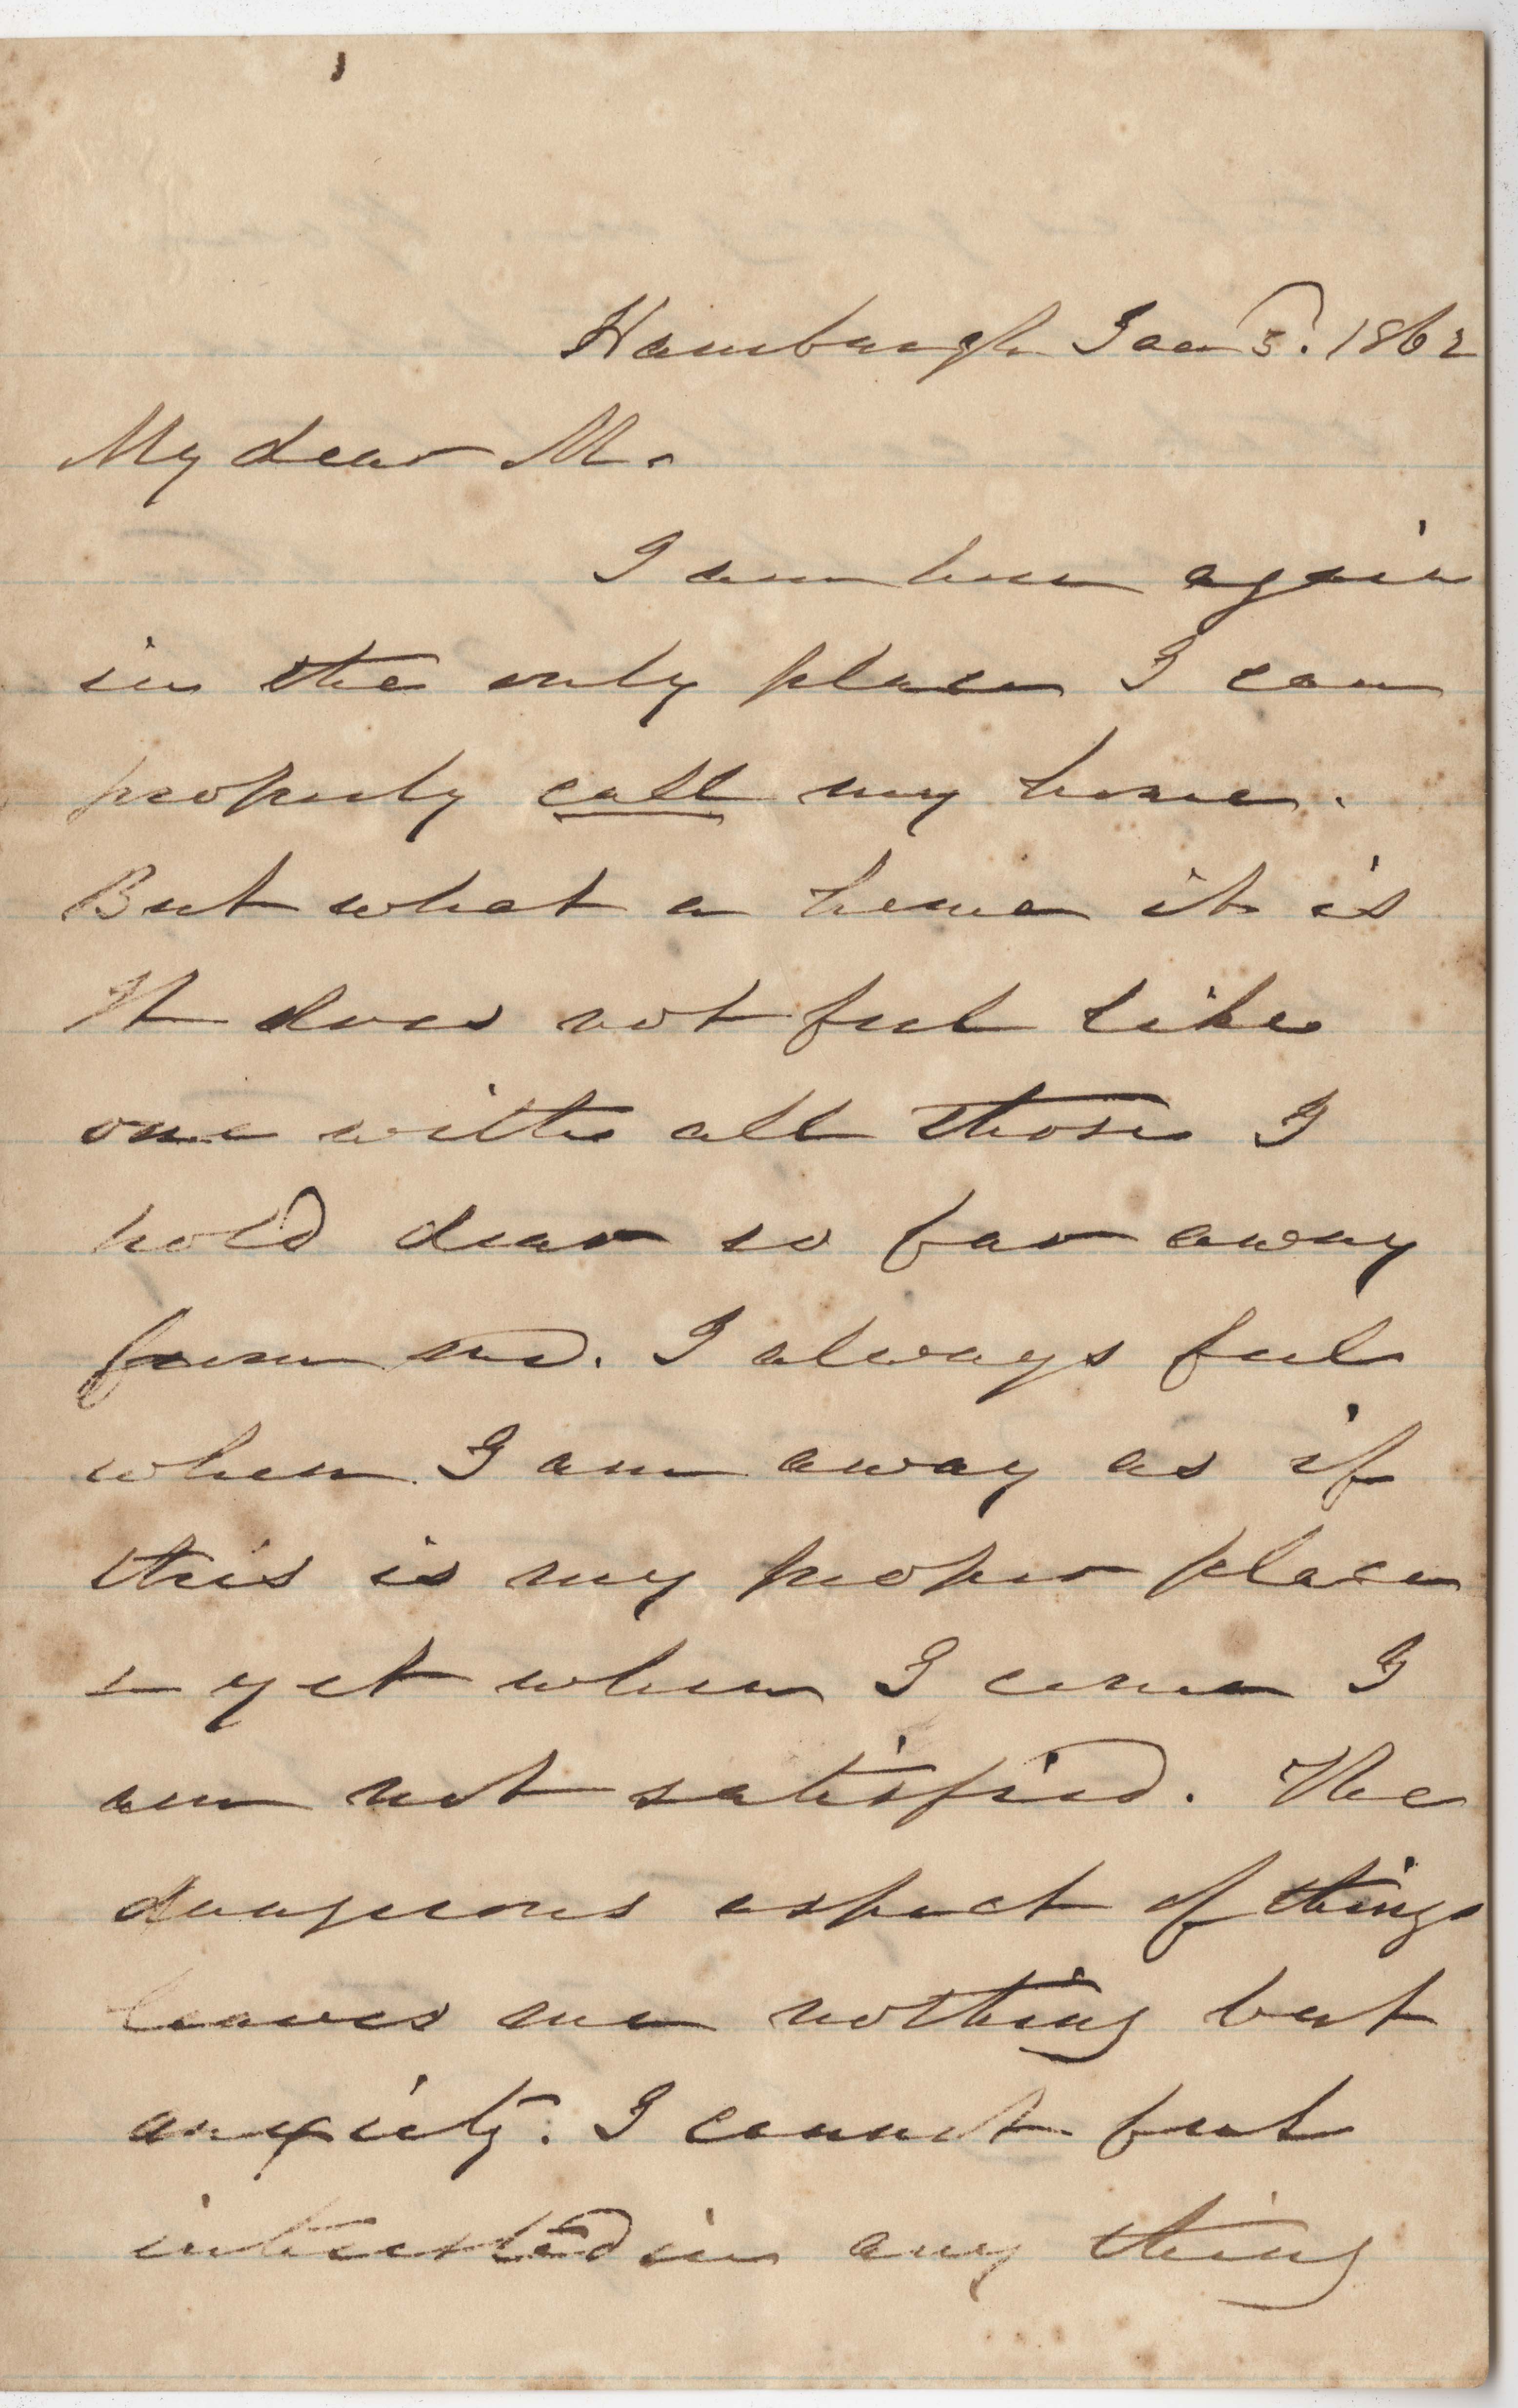 174. James B. Heyward to Maria Heyward -- January 3, 1862